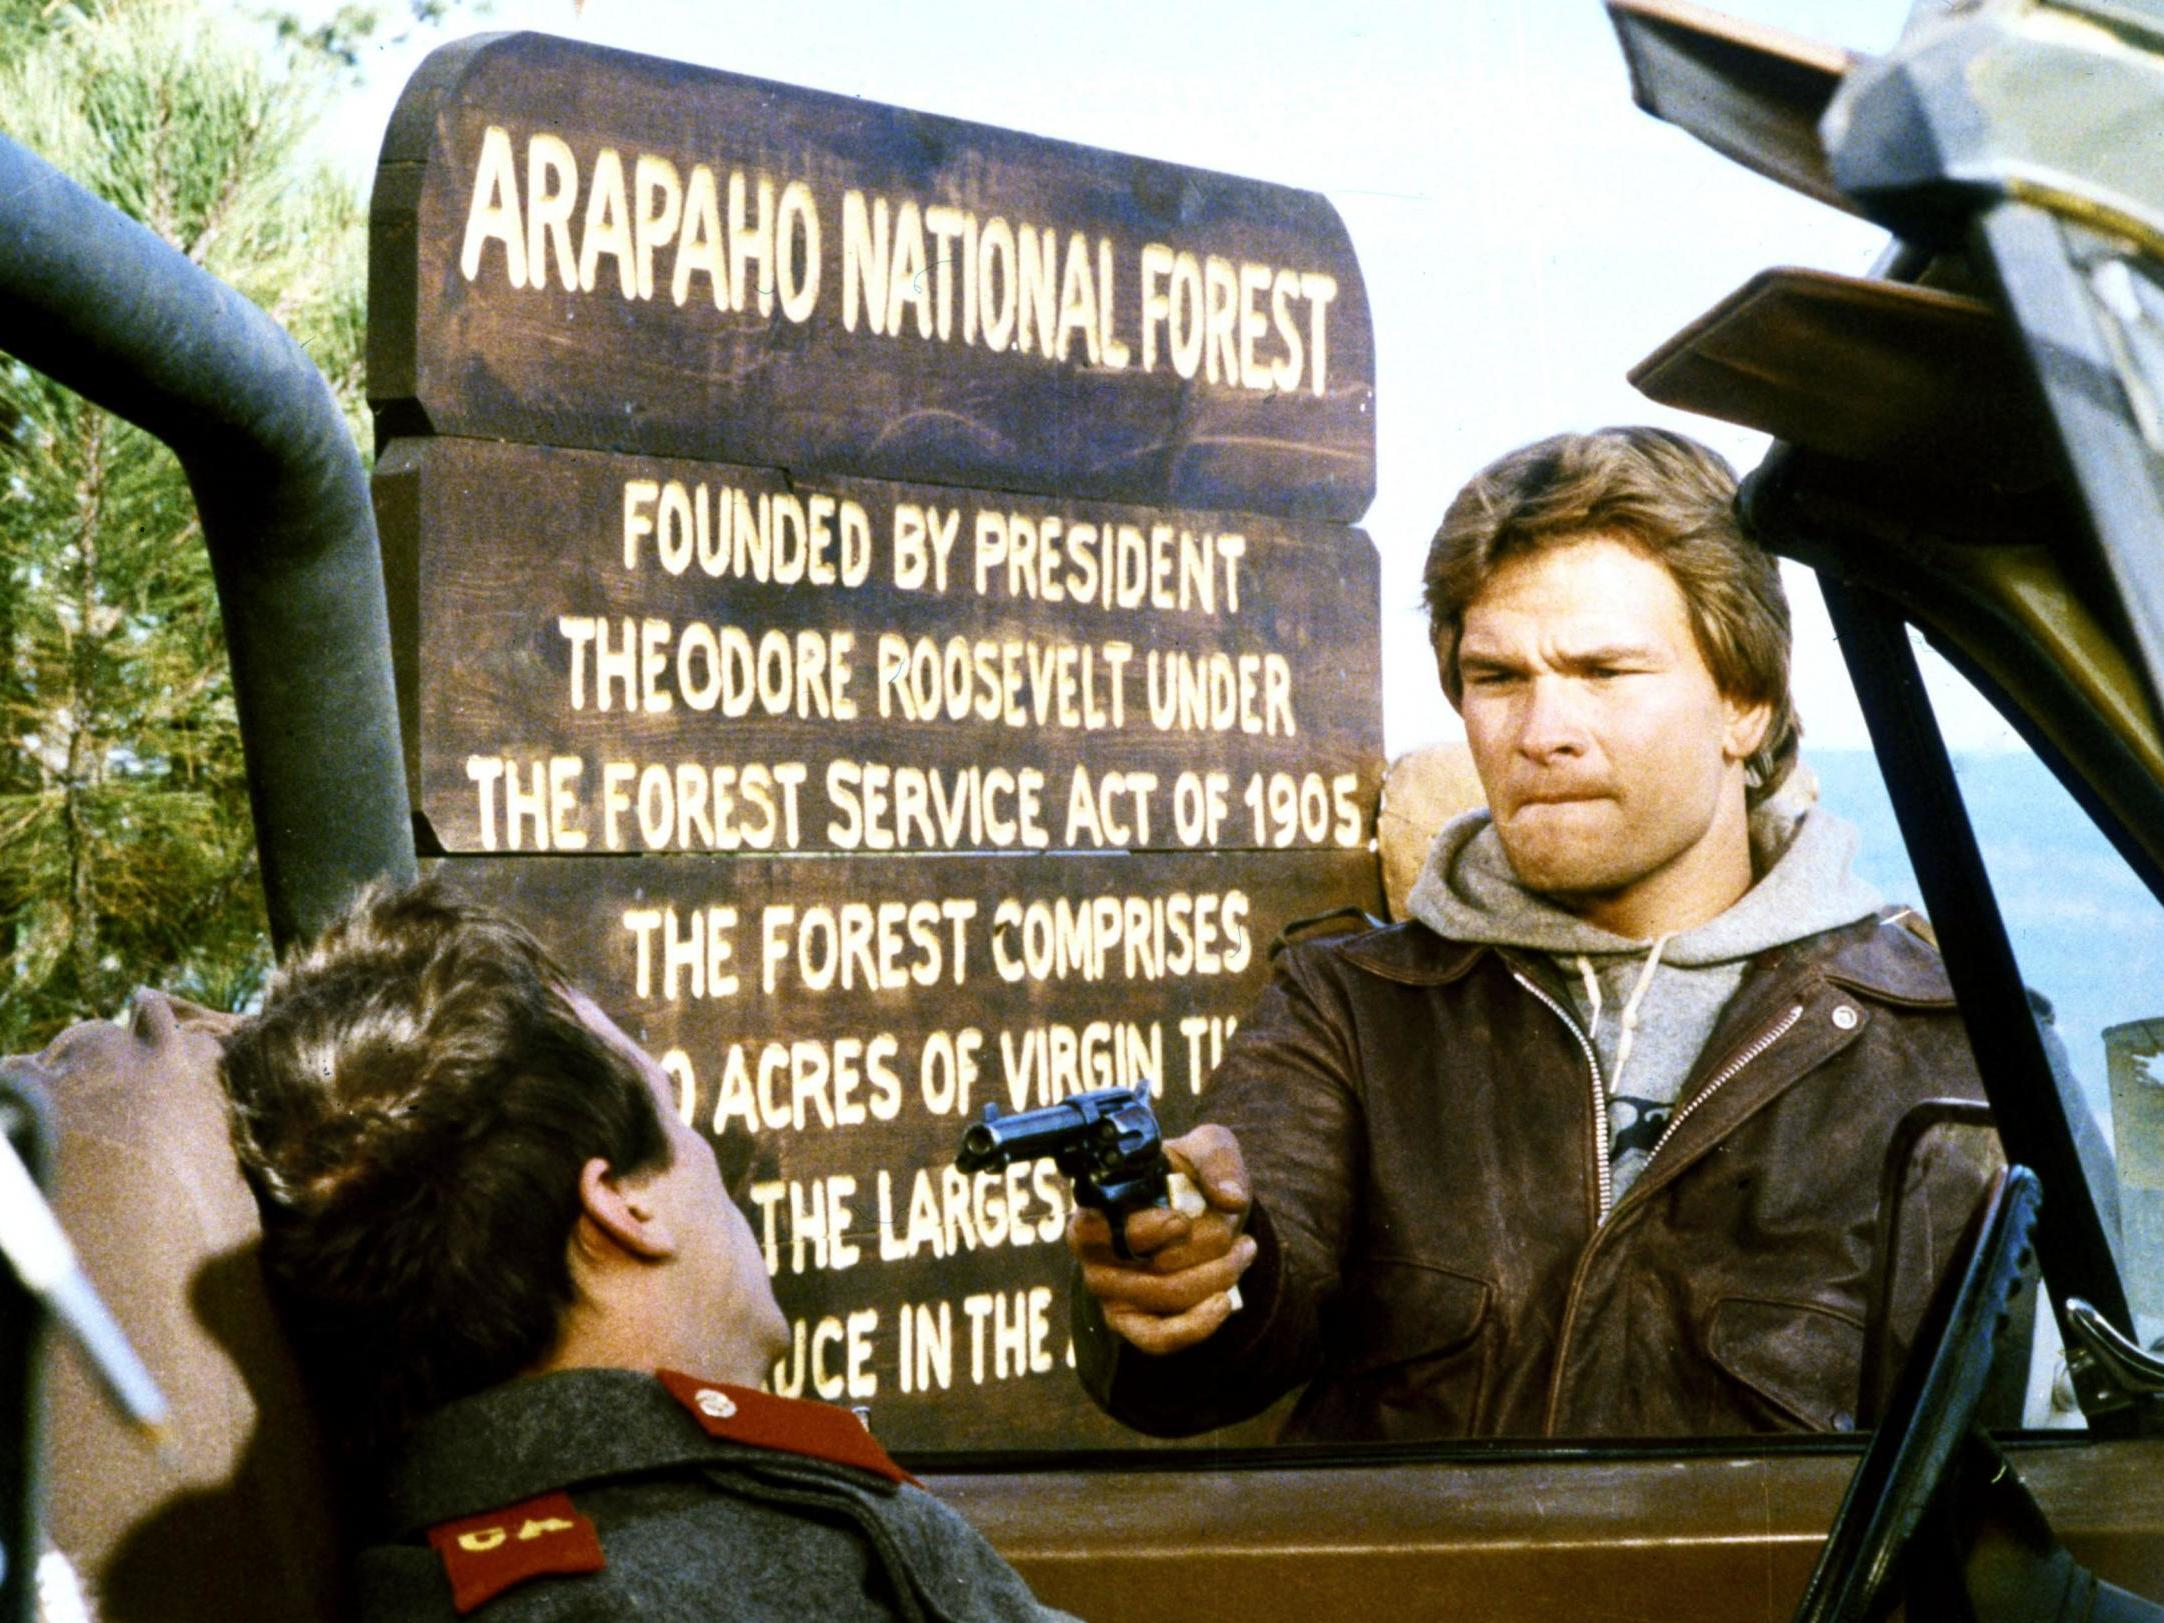 g16 1 20 Things You Probably Didn't Know About Red Dawn